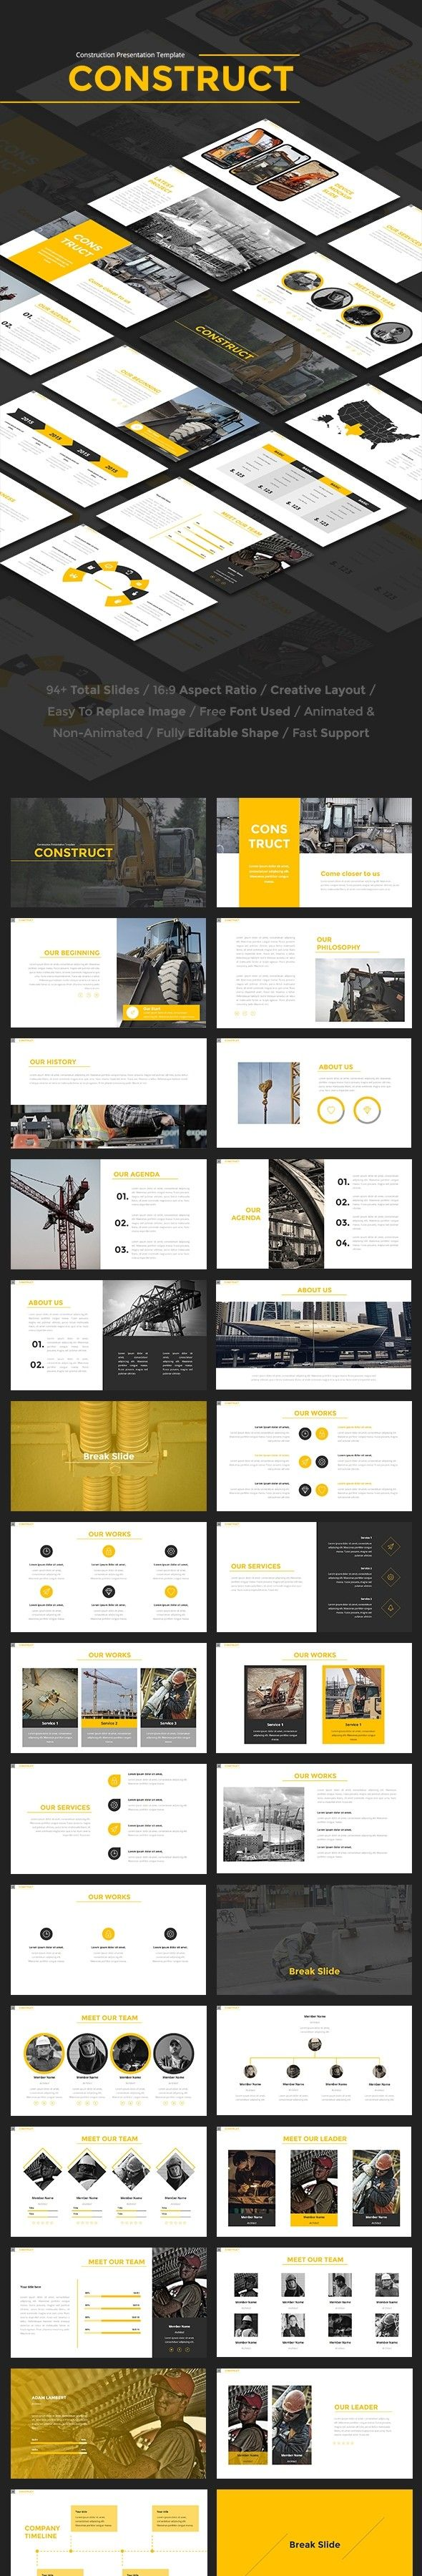 Construct construction powerpoint template presentation construct construction powerpoint template presentation templates template and construction toneelgroepblik Images